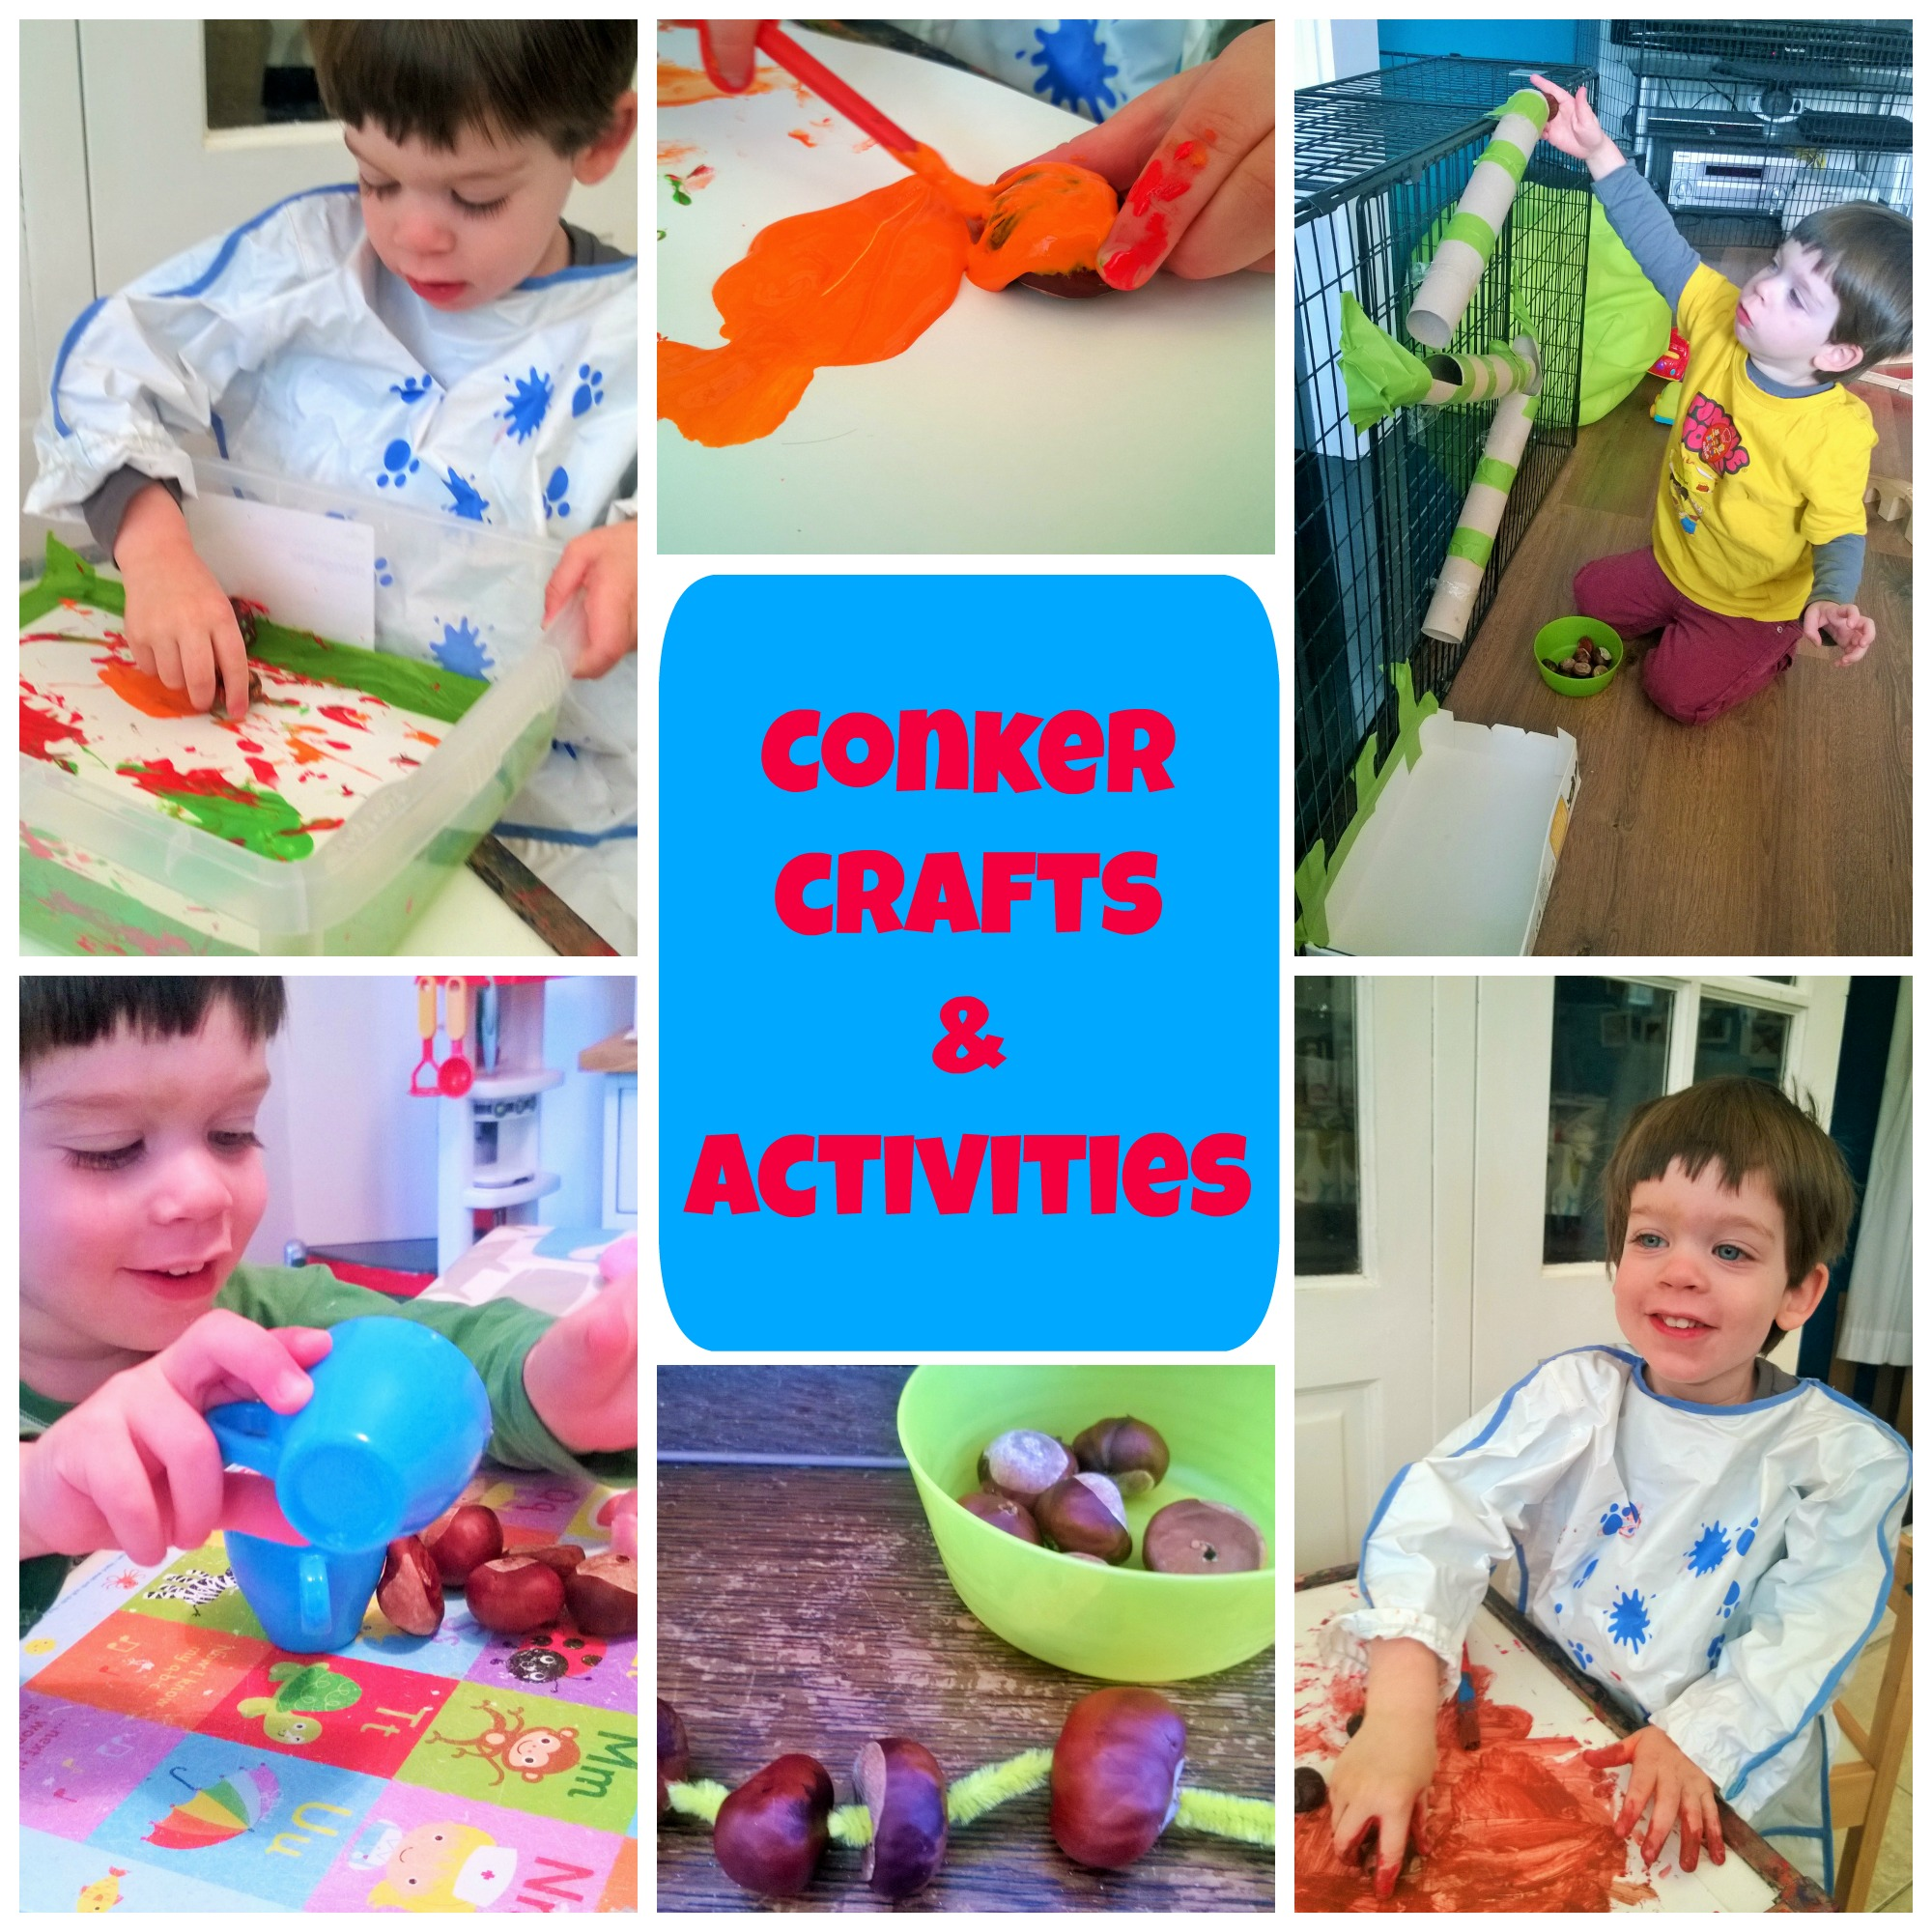 Conker Crafts and Activities for Toddlers Be ing a Stay at